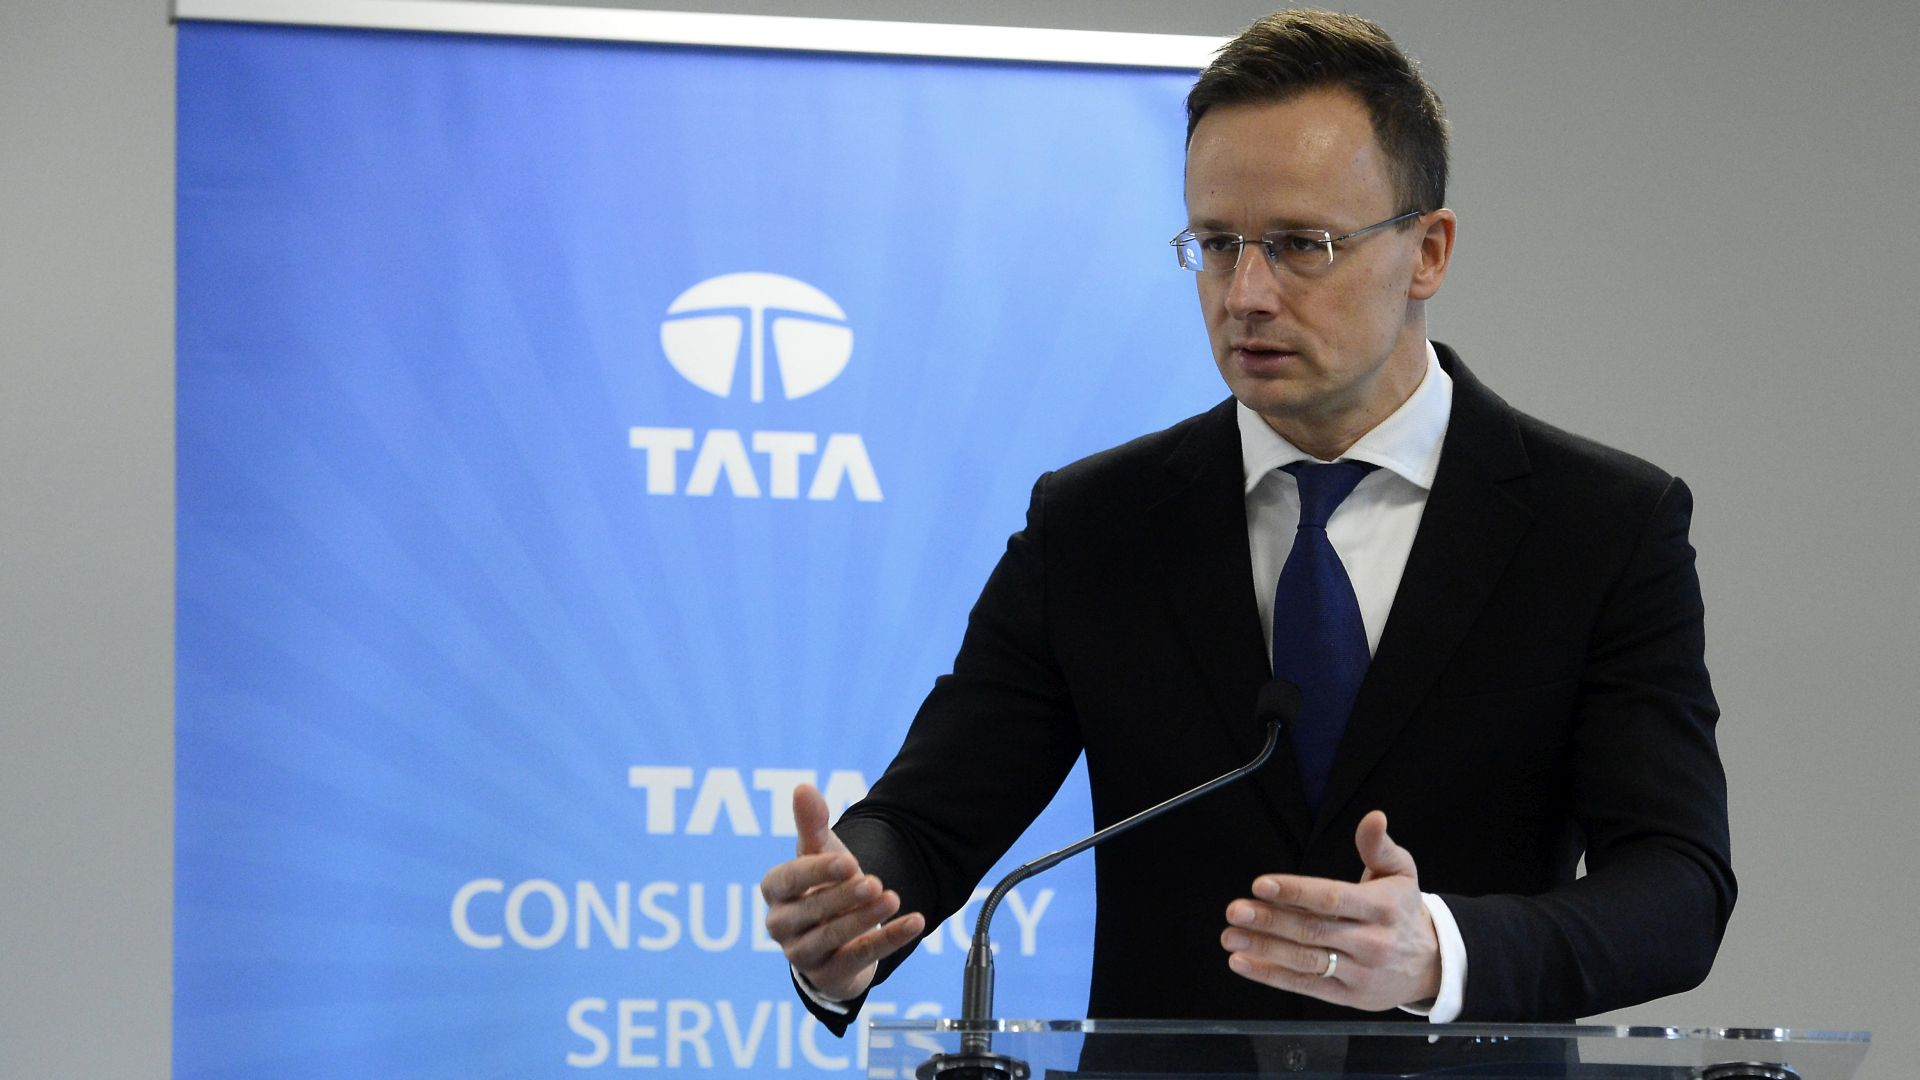 TCS Service Centre in Budapest has grown by a new unit - VIDEO REPORT